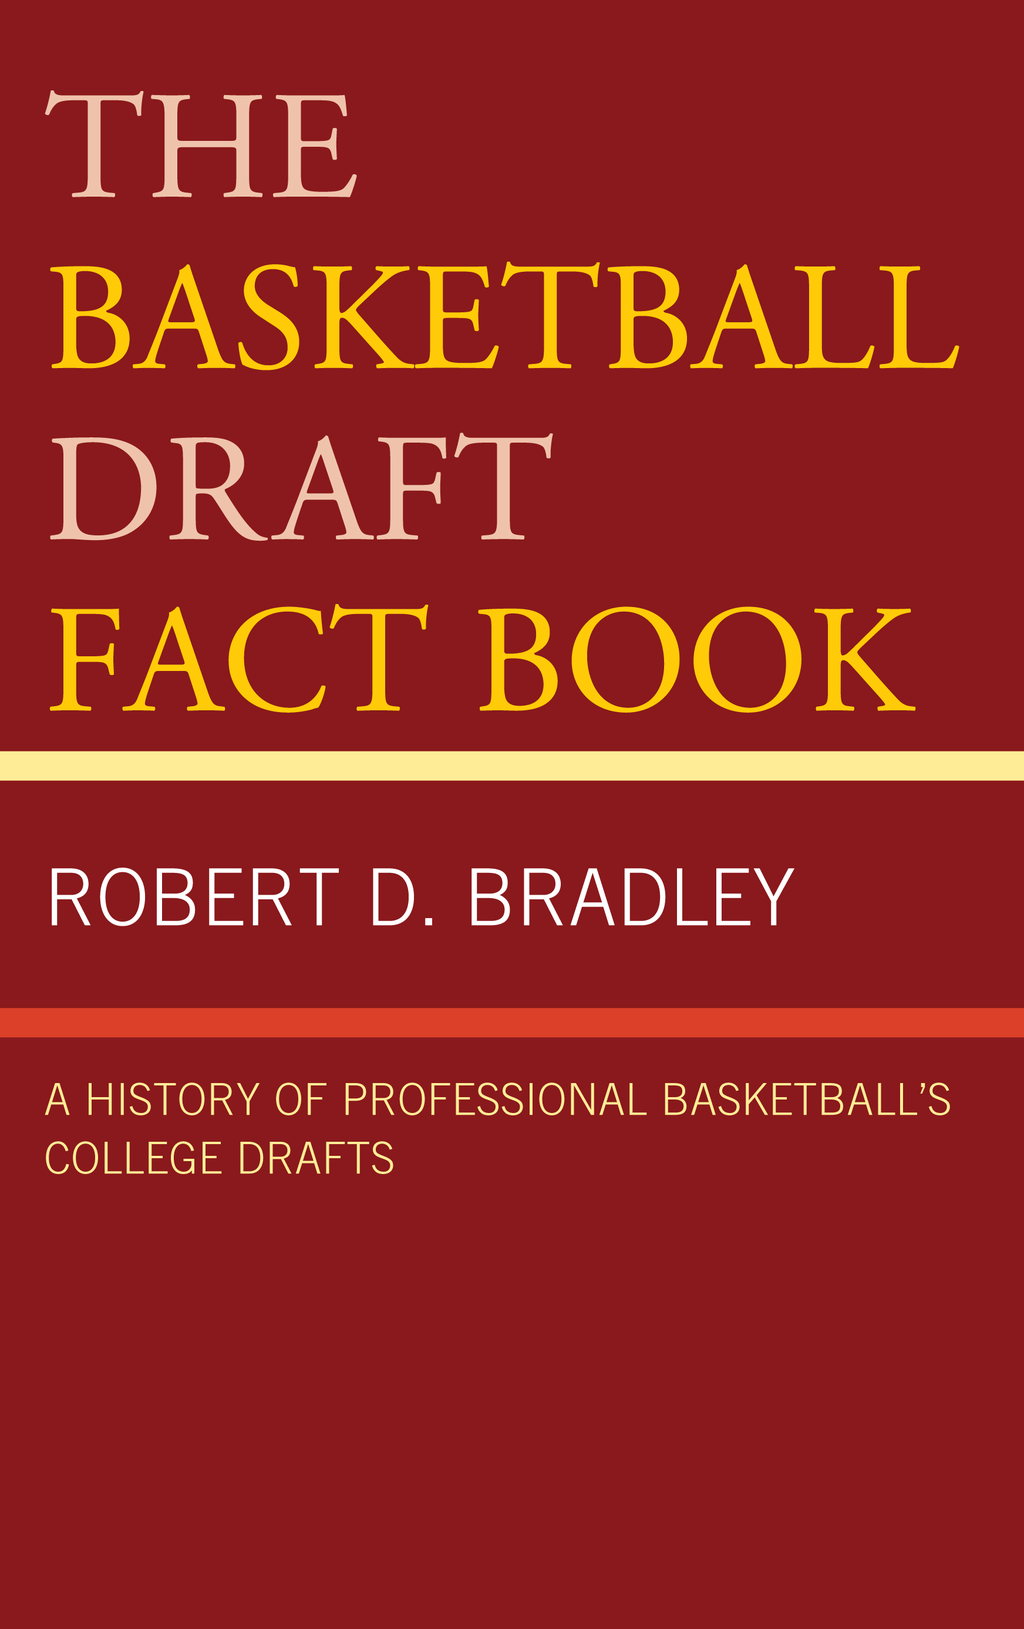 The Basketball Draft Fact Book